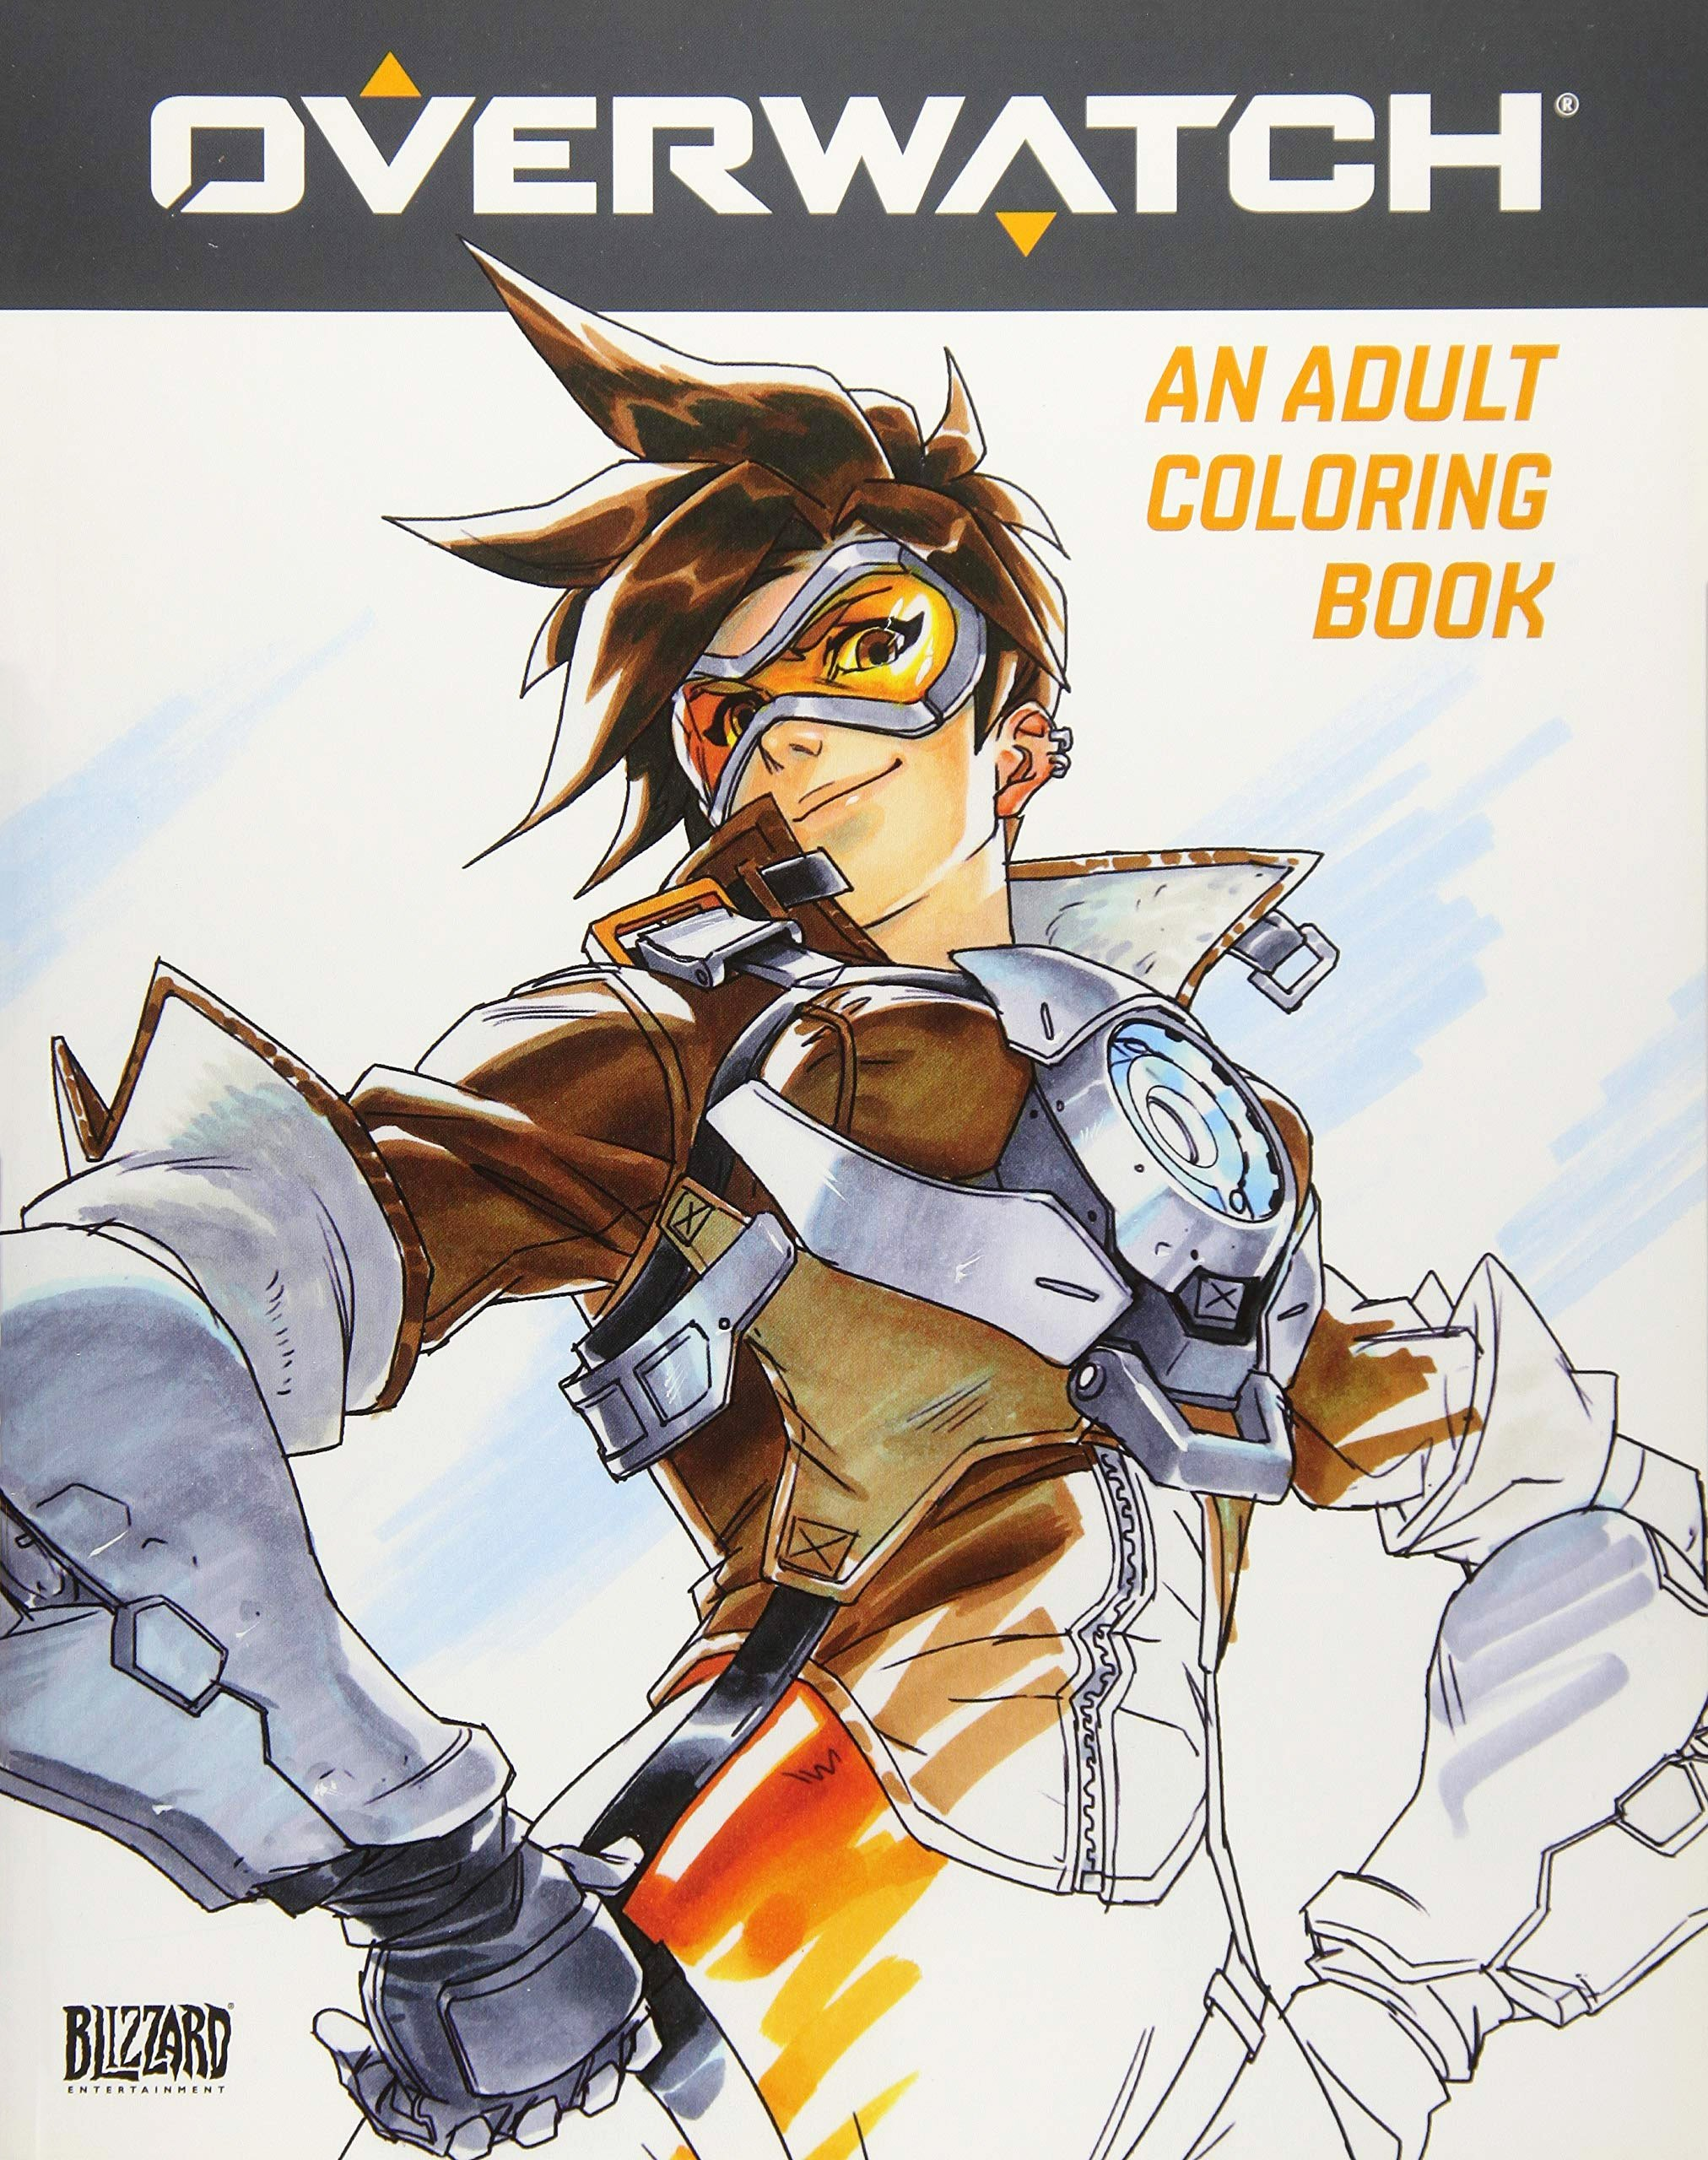 Overwatch - An Adult Coloring Book